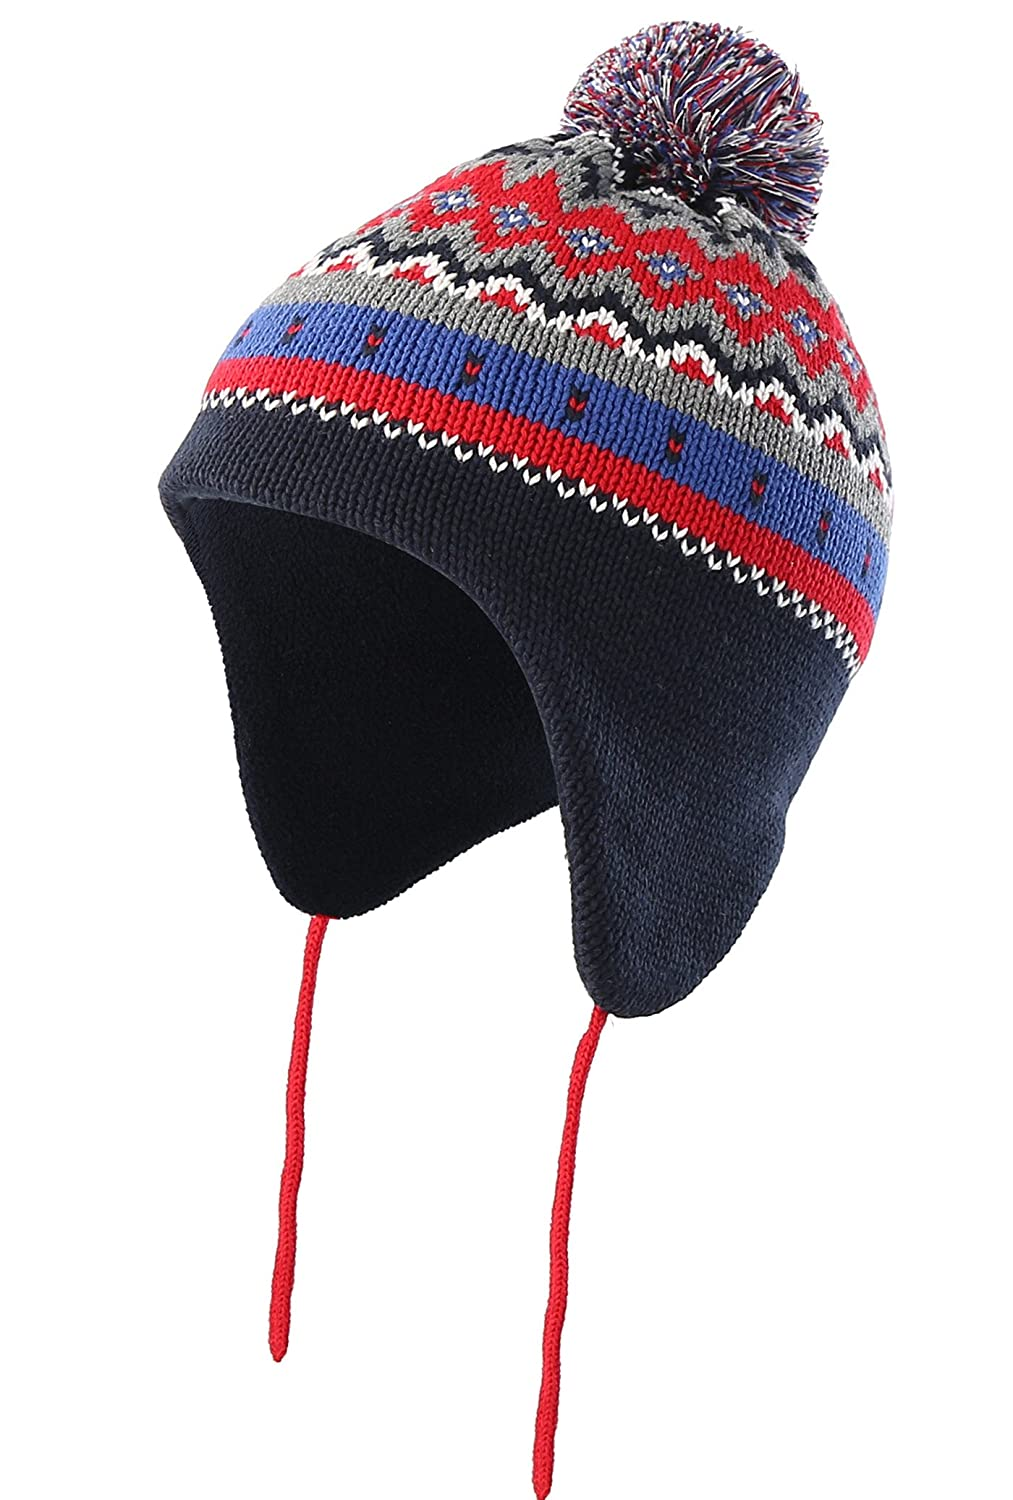 dc01a38ea8f Amazon.com  Connectyle Toddler Boys Knit Kids Hat with Earflap Lined Beanie  Winter Skull Cap Navy Blue  Clothing